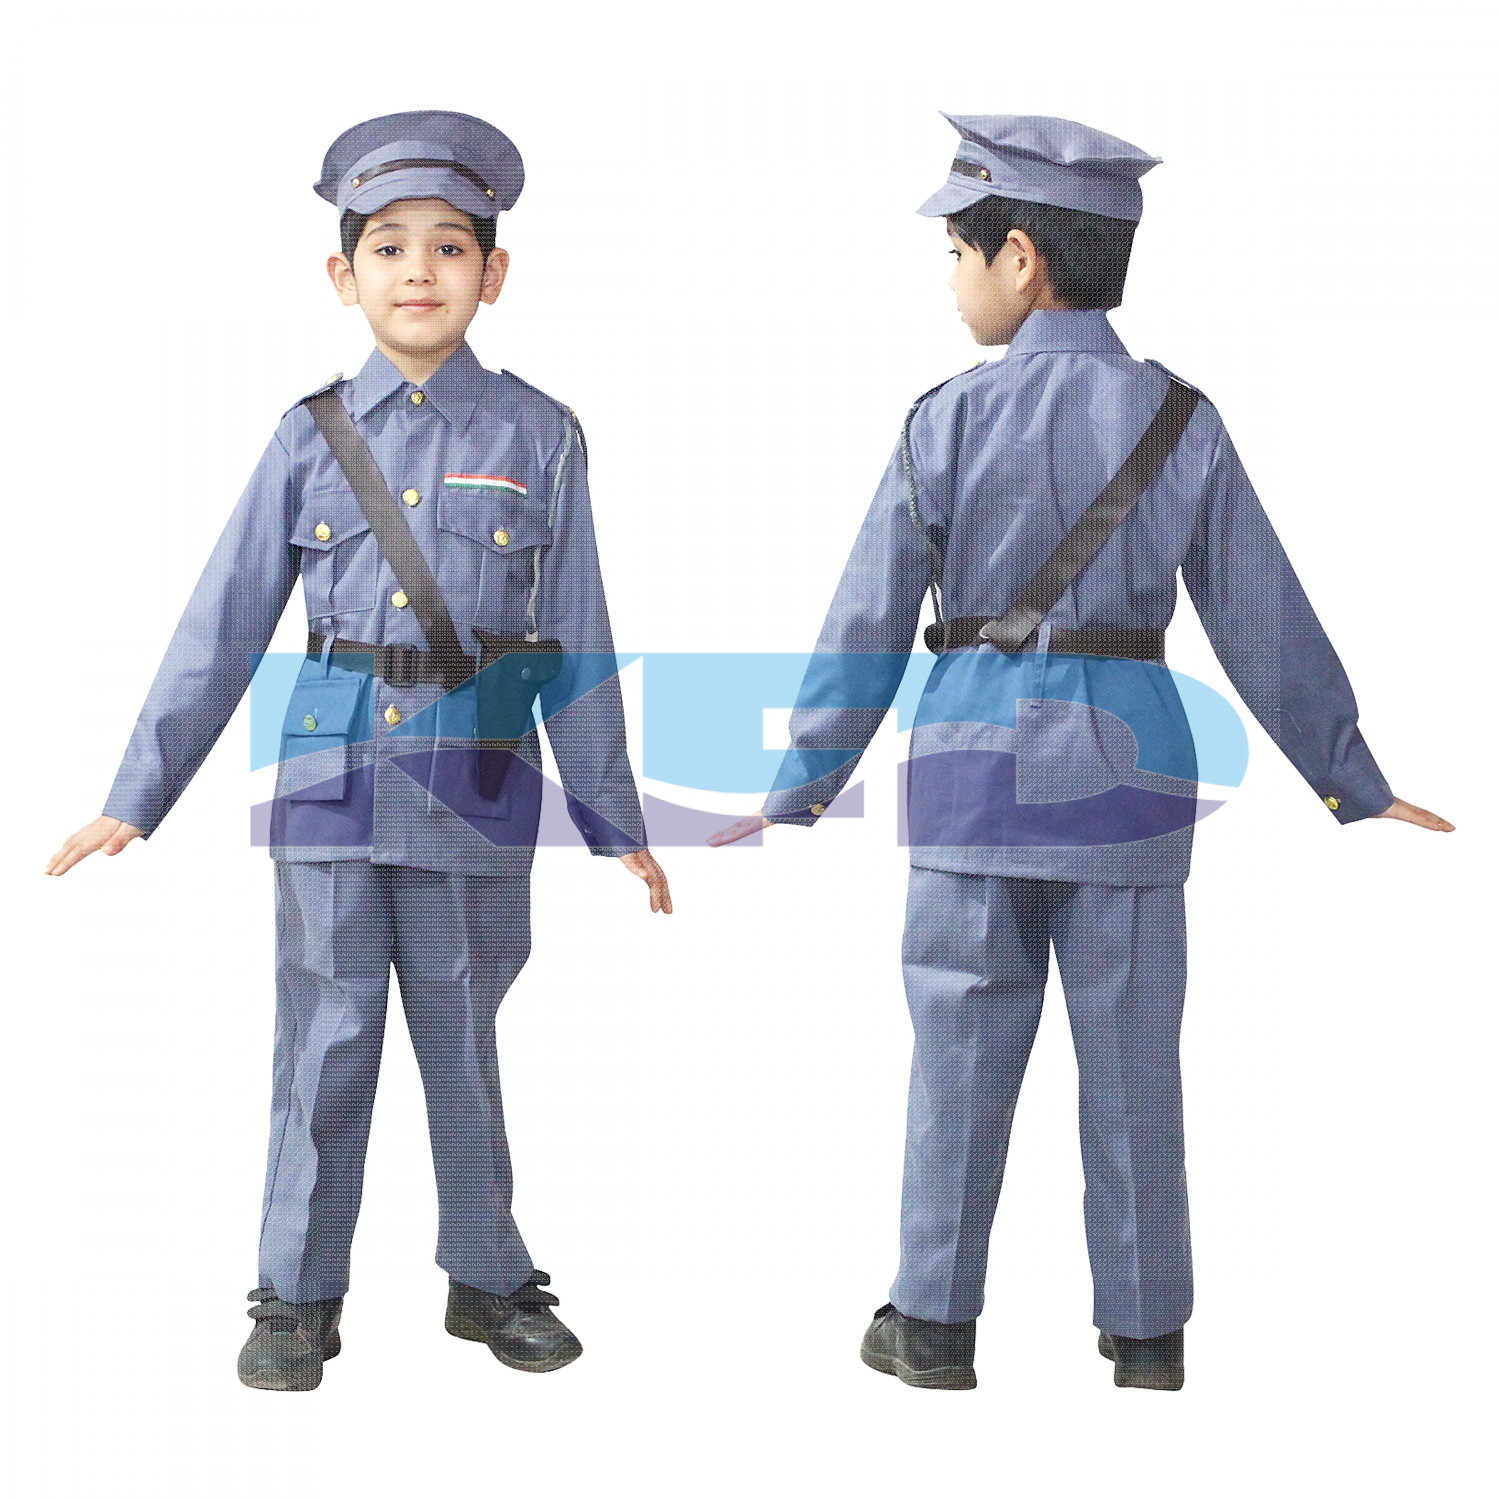 Indian Air Force Our Helper/National Hero Costume For Kids School Annual Function/Theme Party/Competition/Stage Shows Dress